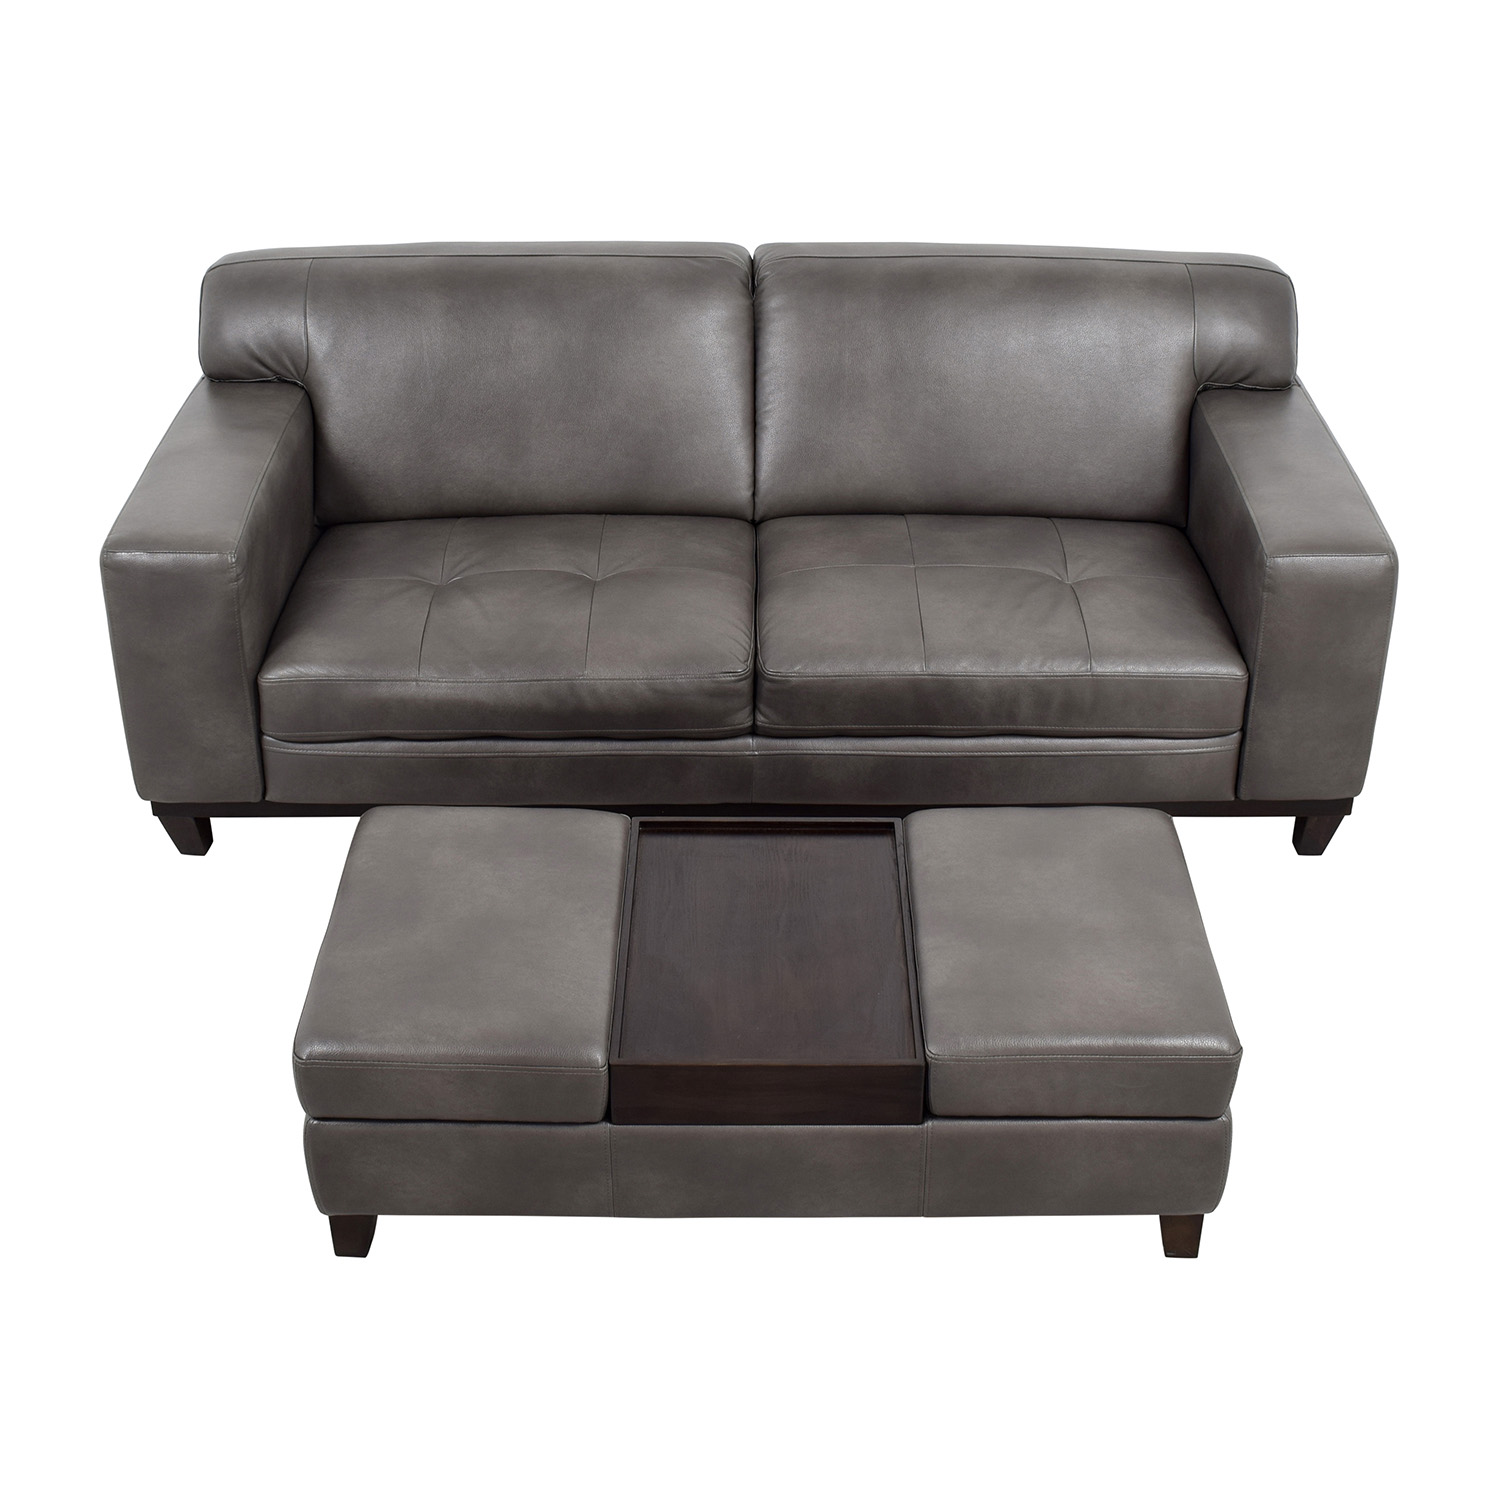 Raymour Flanigan Grey Leather Couch With Storage Ottoman Sofas